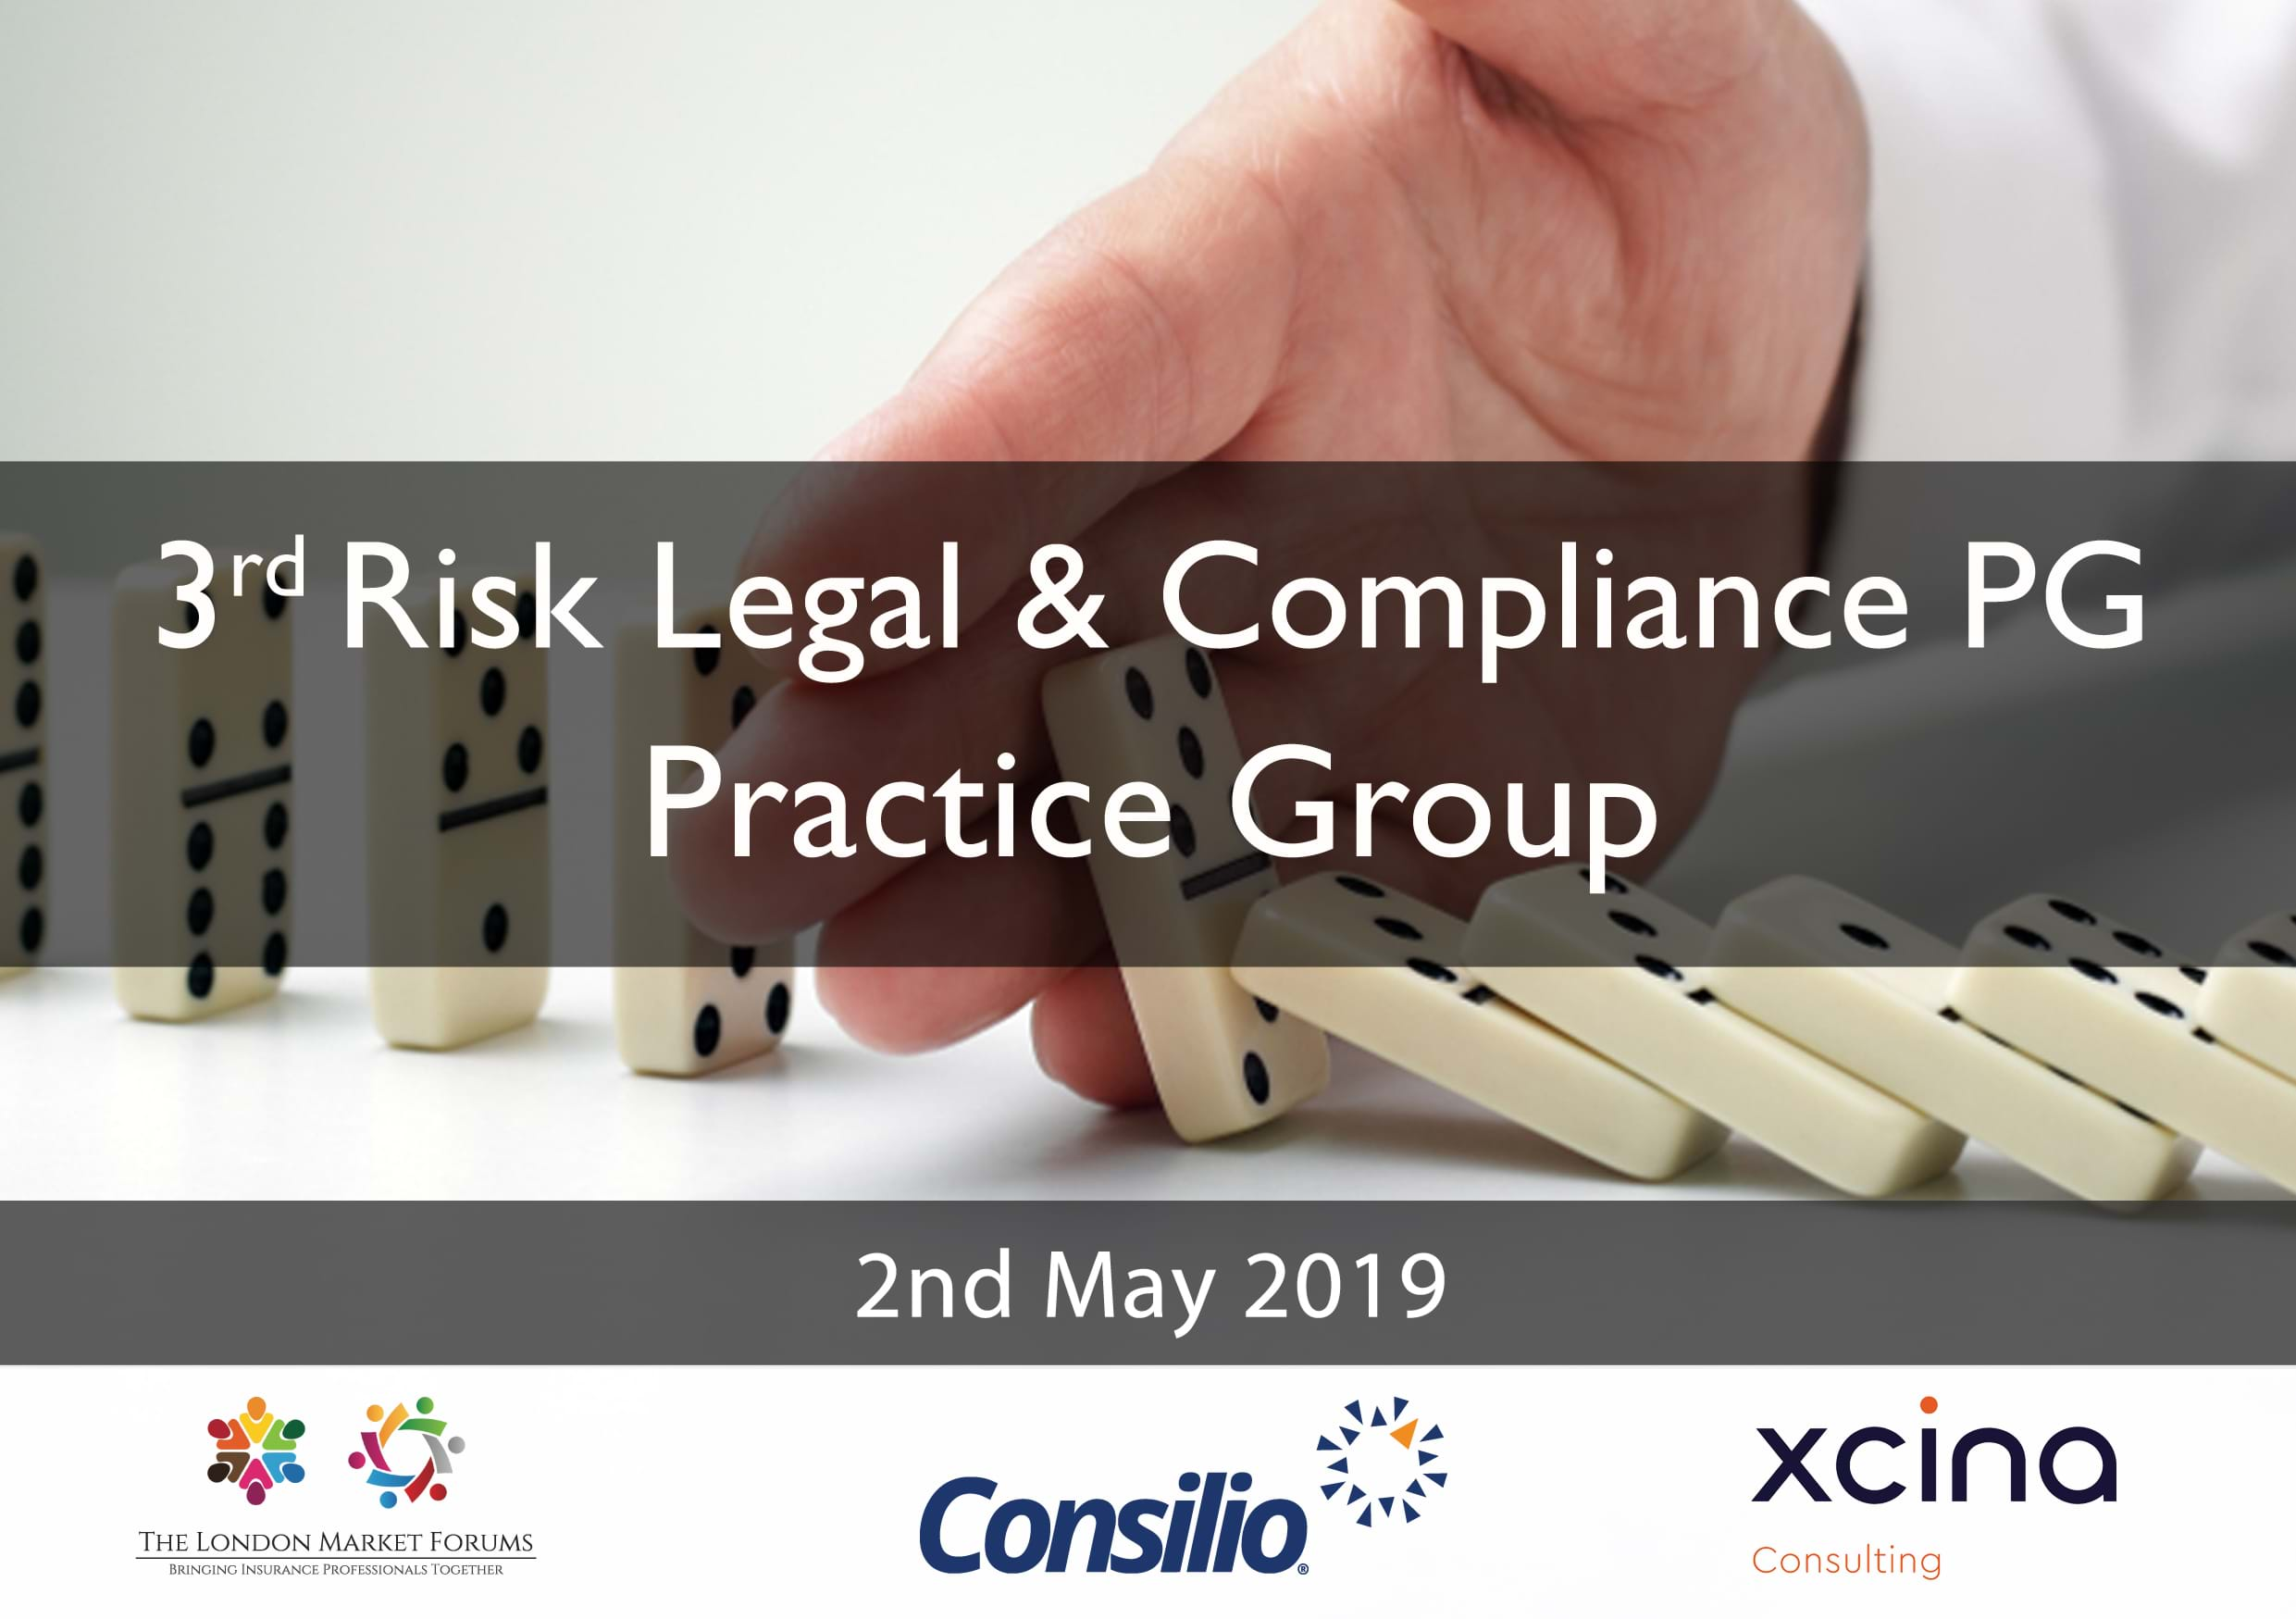 Risk Legal & Compliance Practice Group - 2nd May 2019